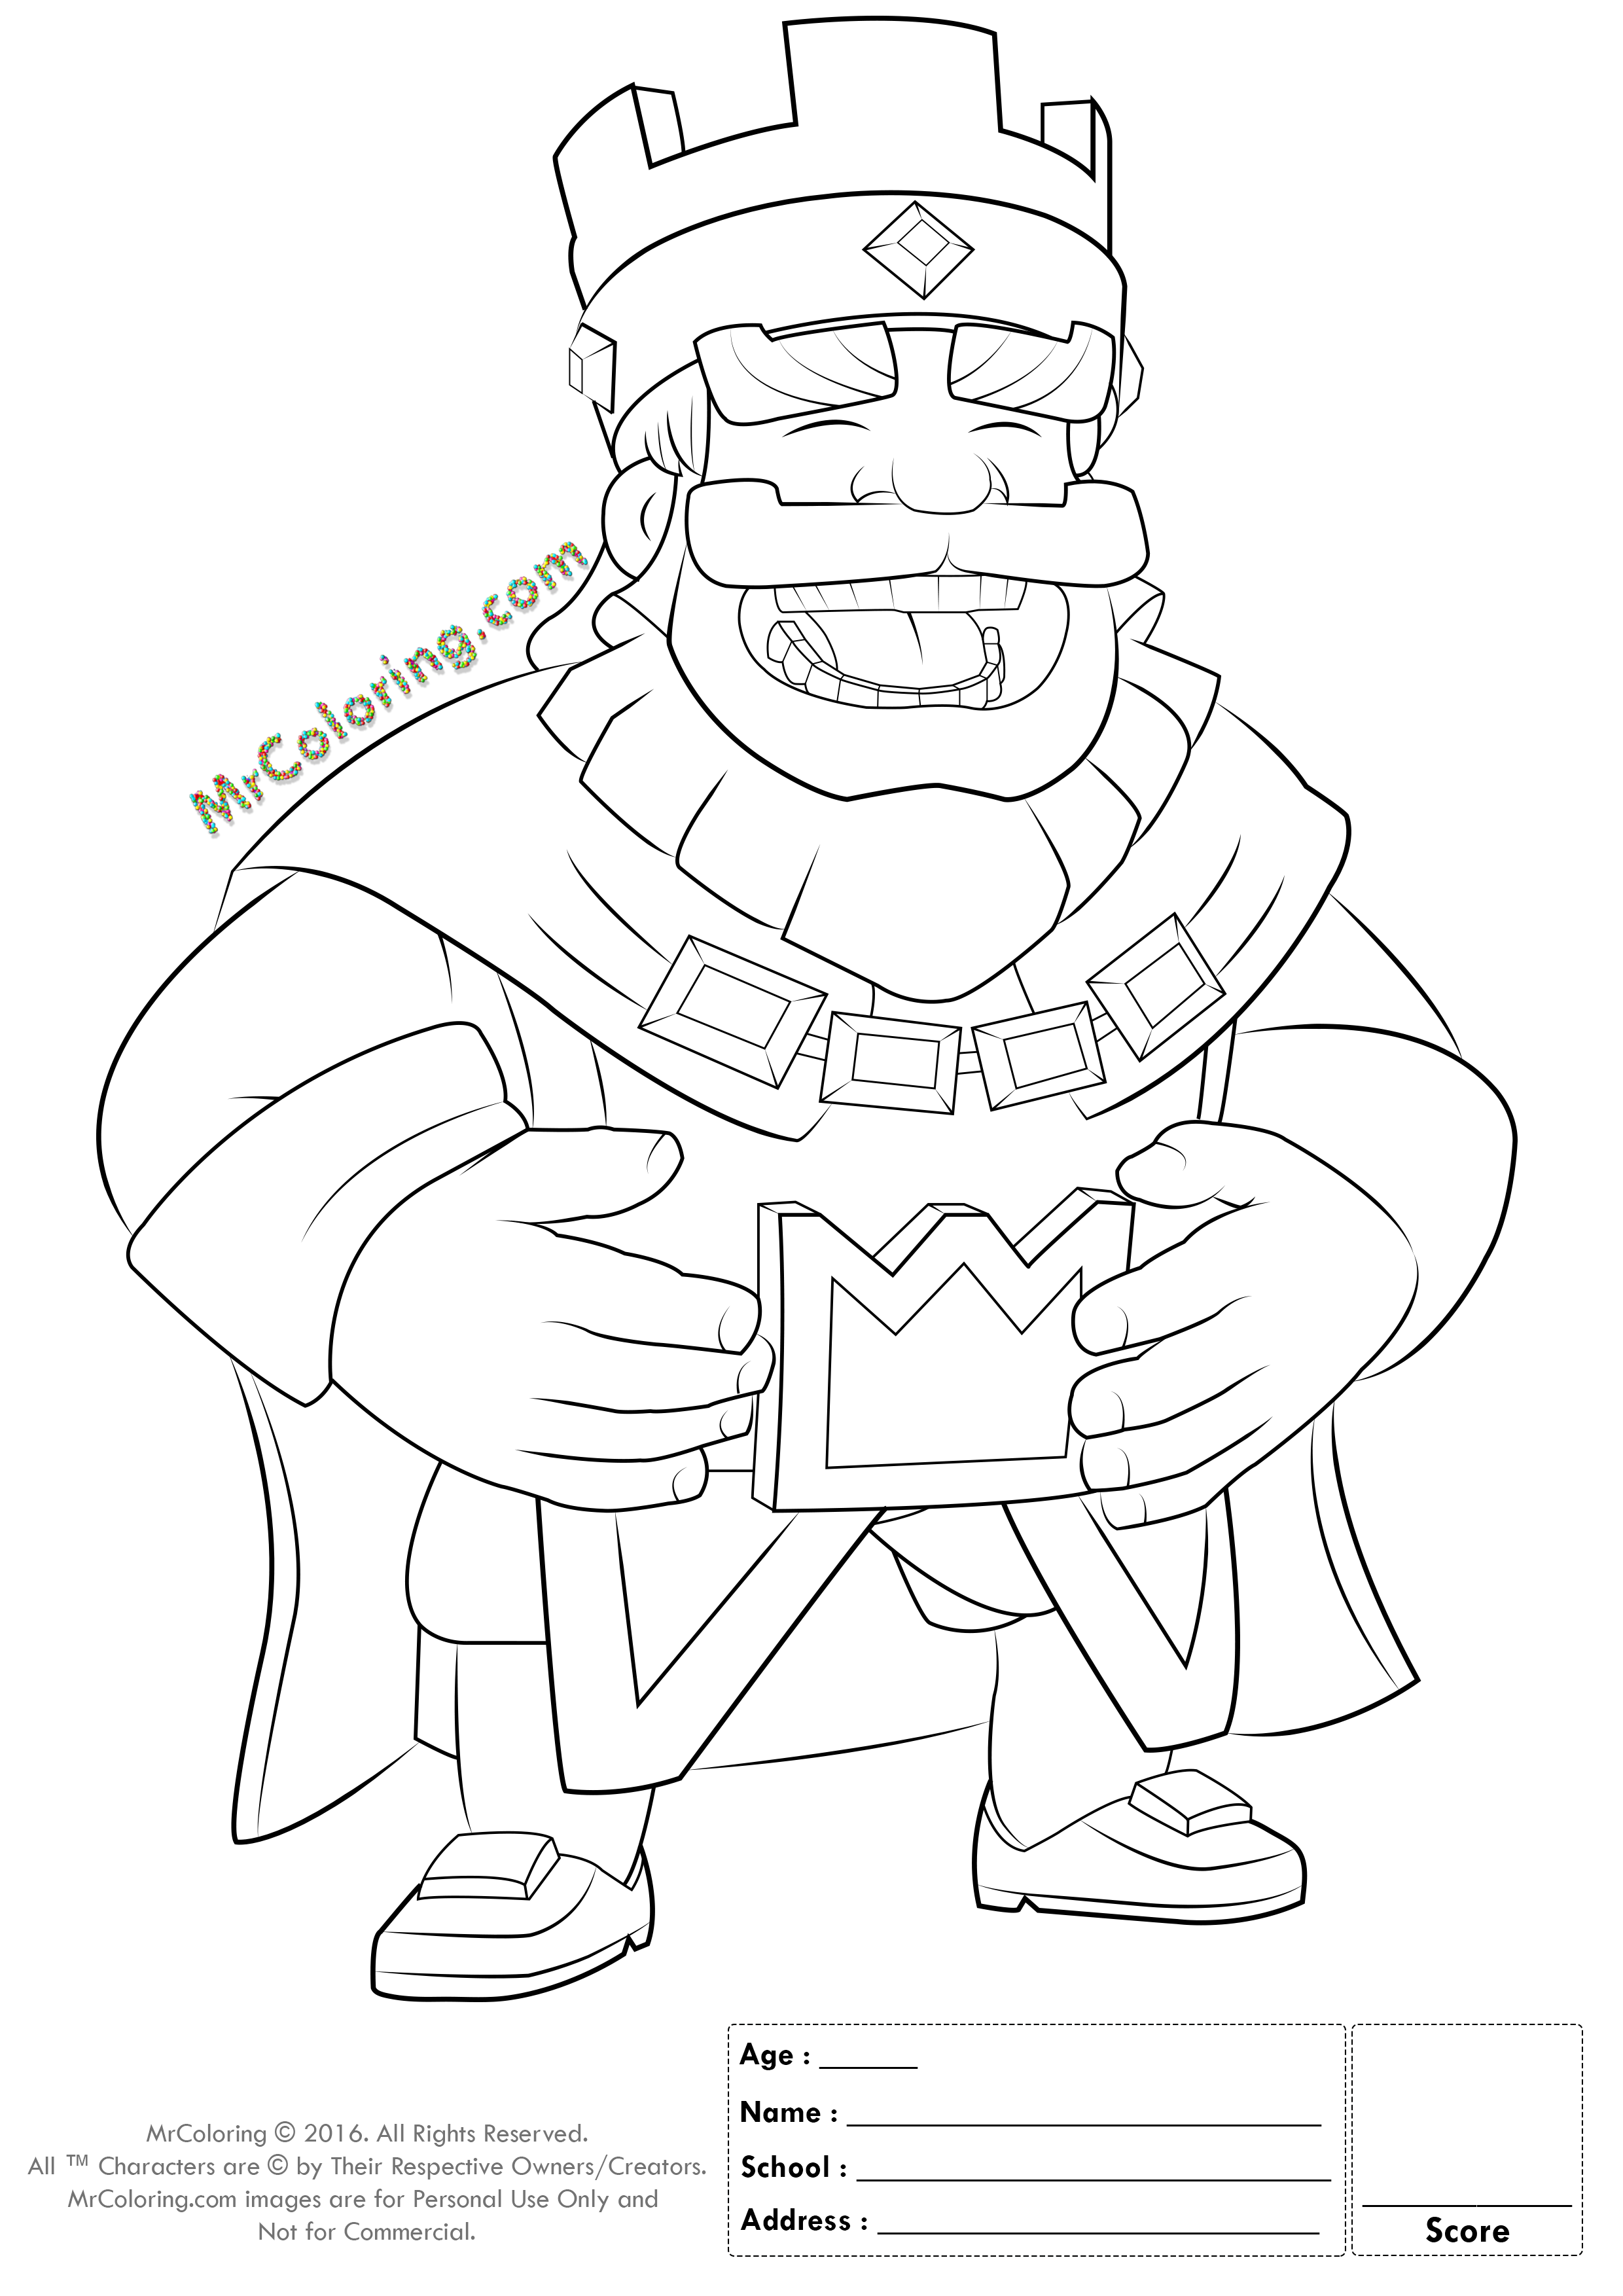 Printable Blue King Clash Royale Online Coloring Pages - 1 ...